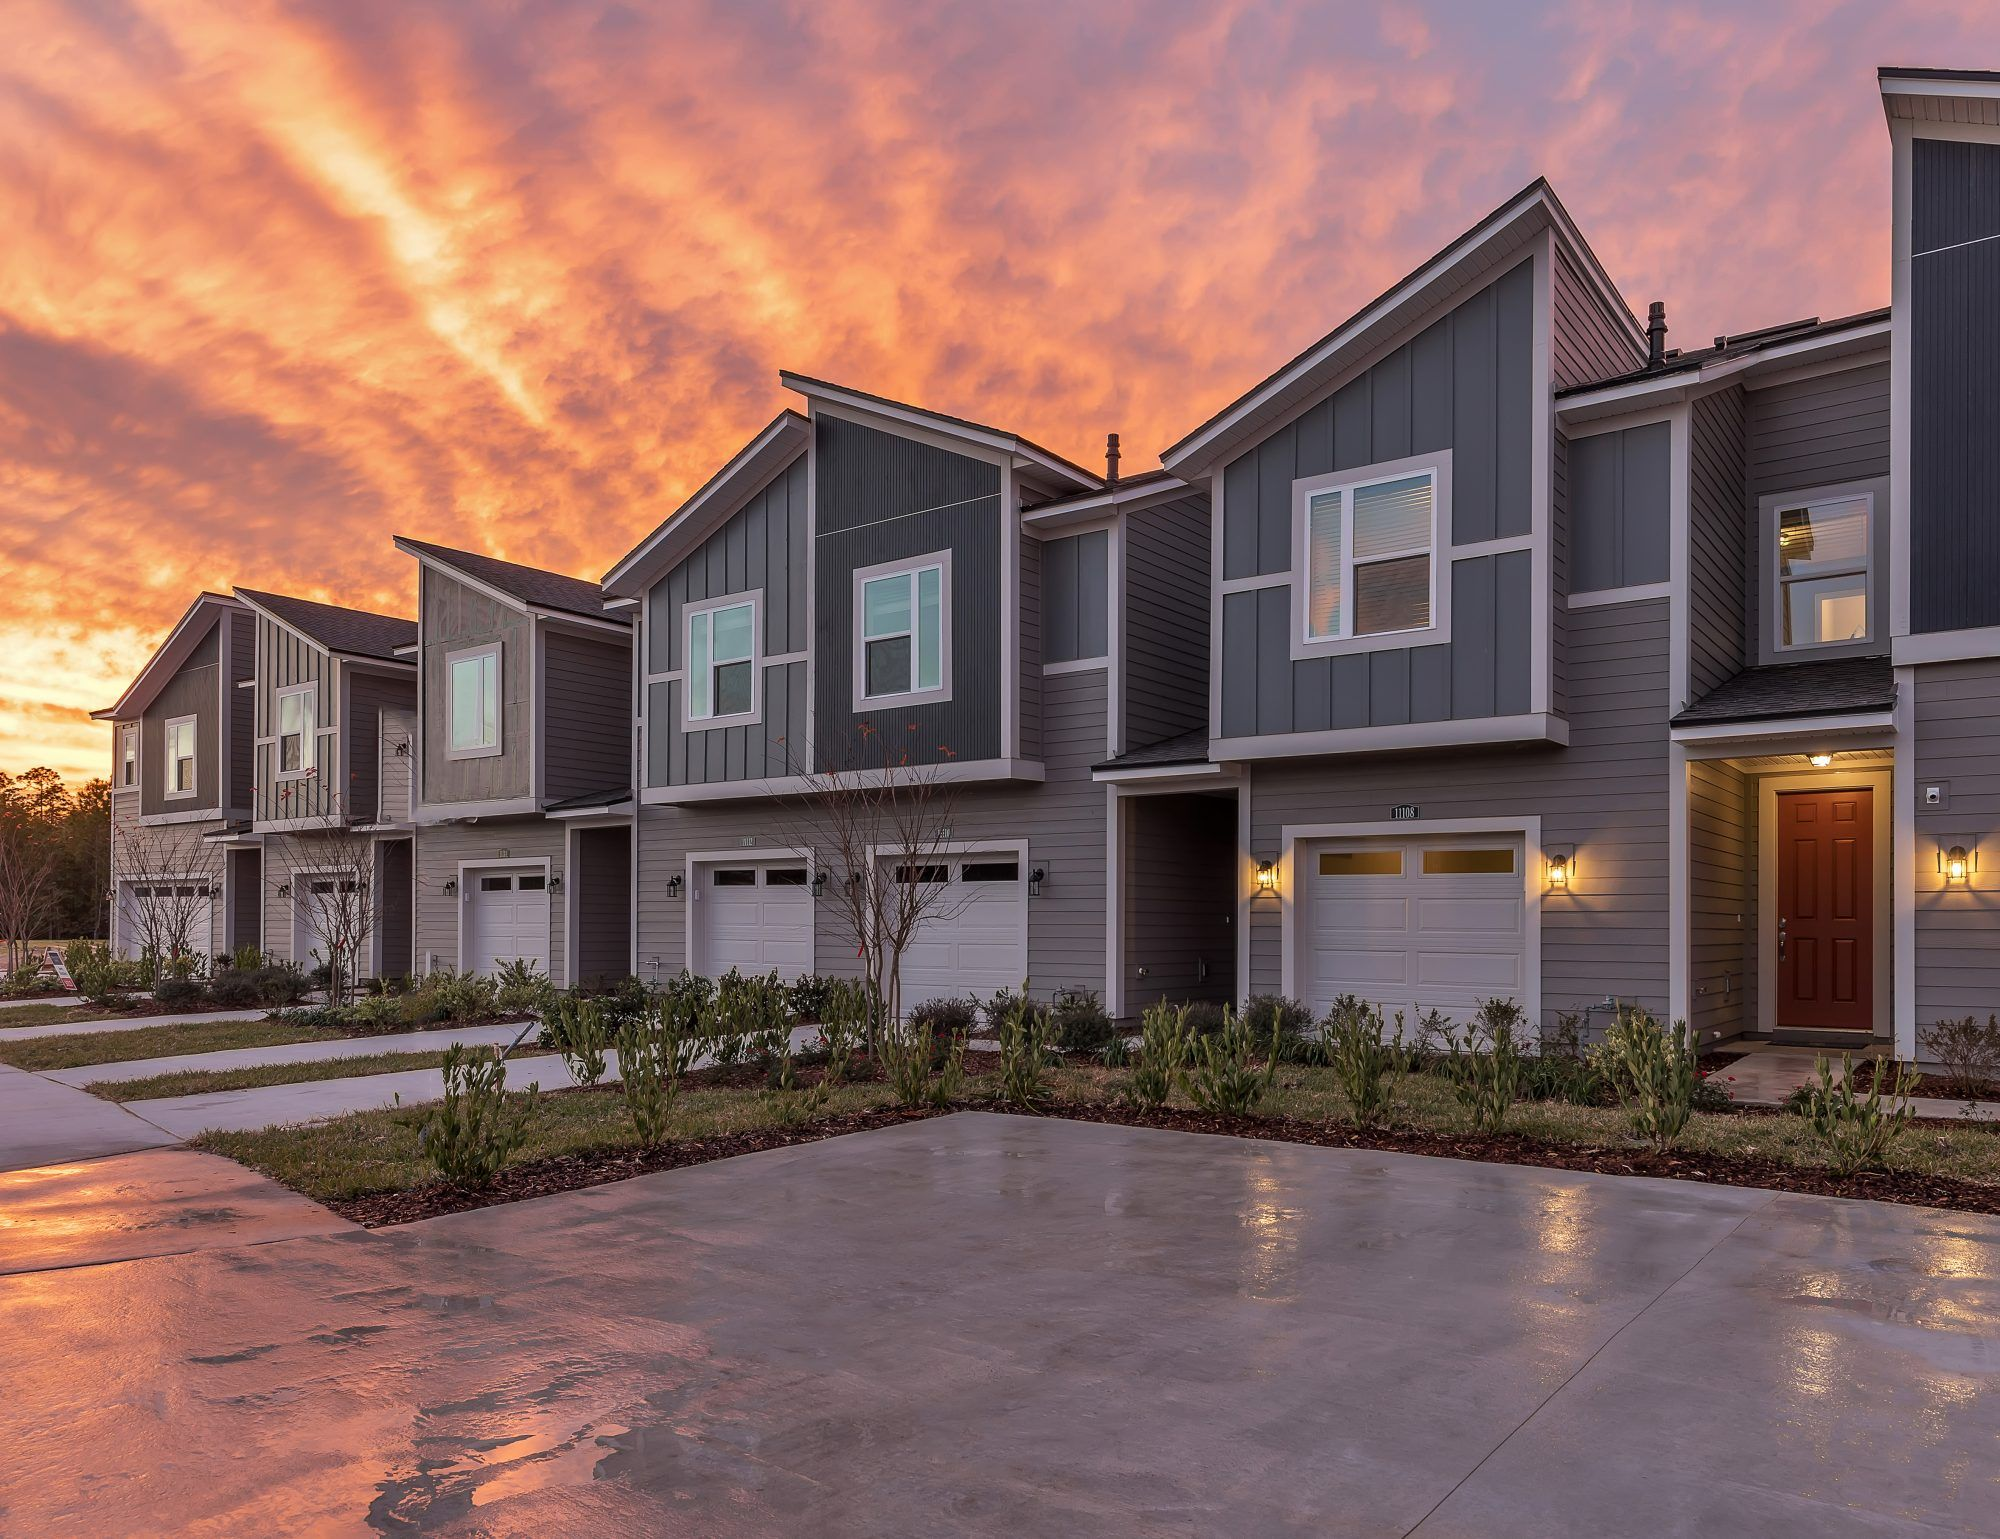 'East Village Townhomes' by Jacksonville in Jacksonville-St. Augustine